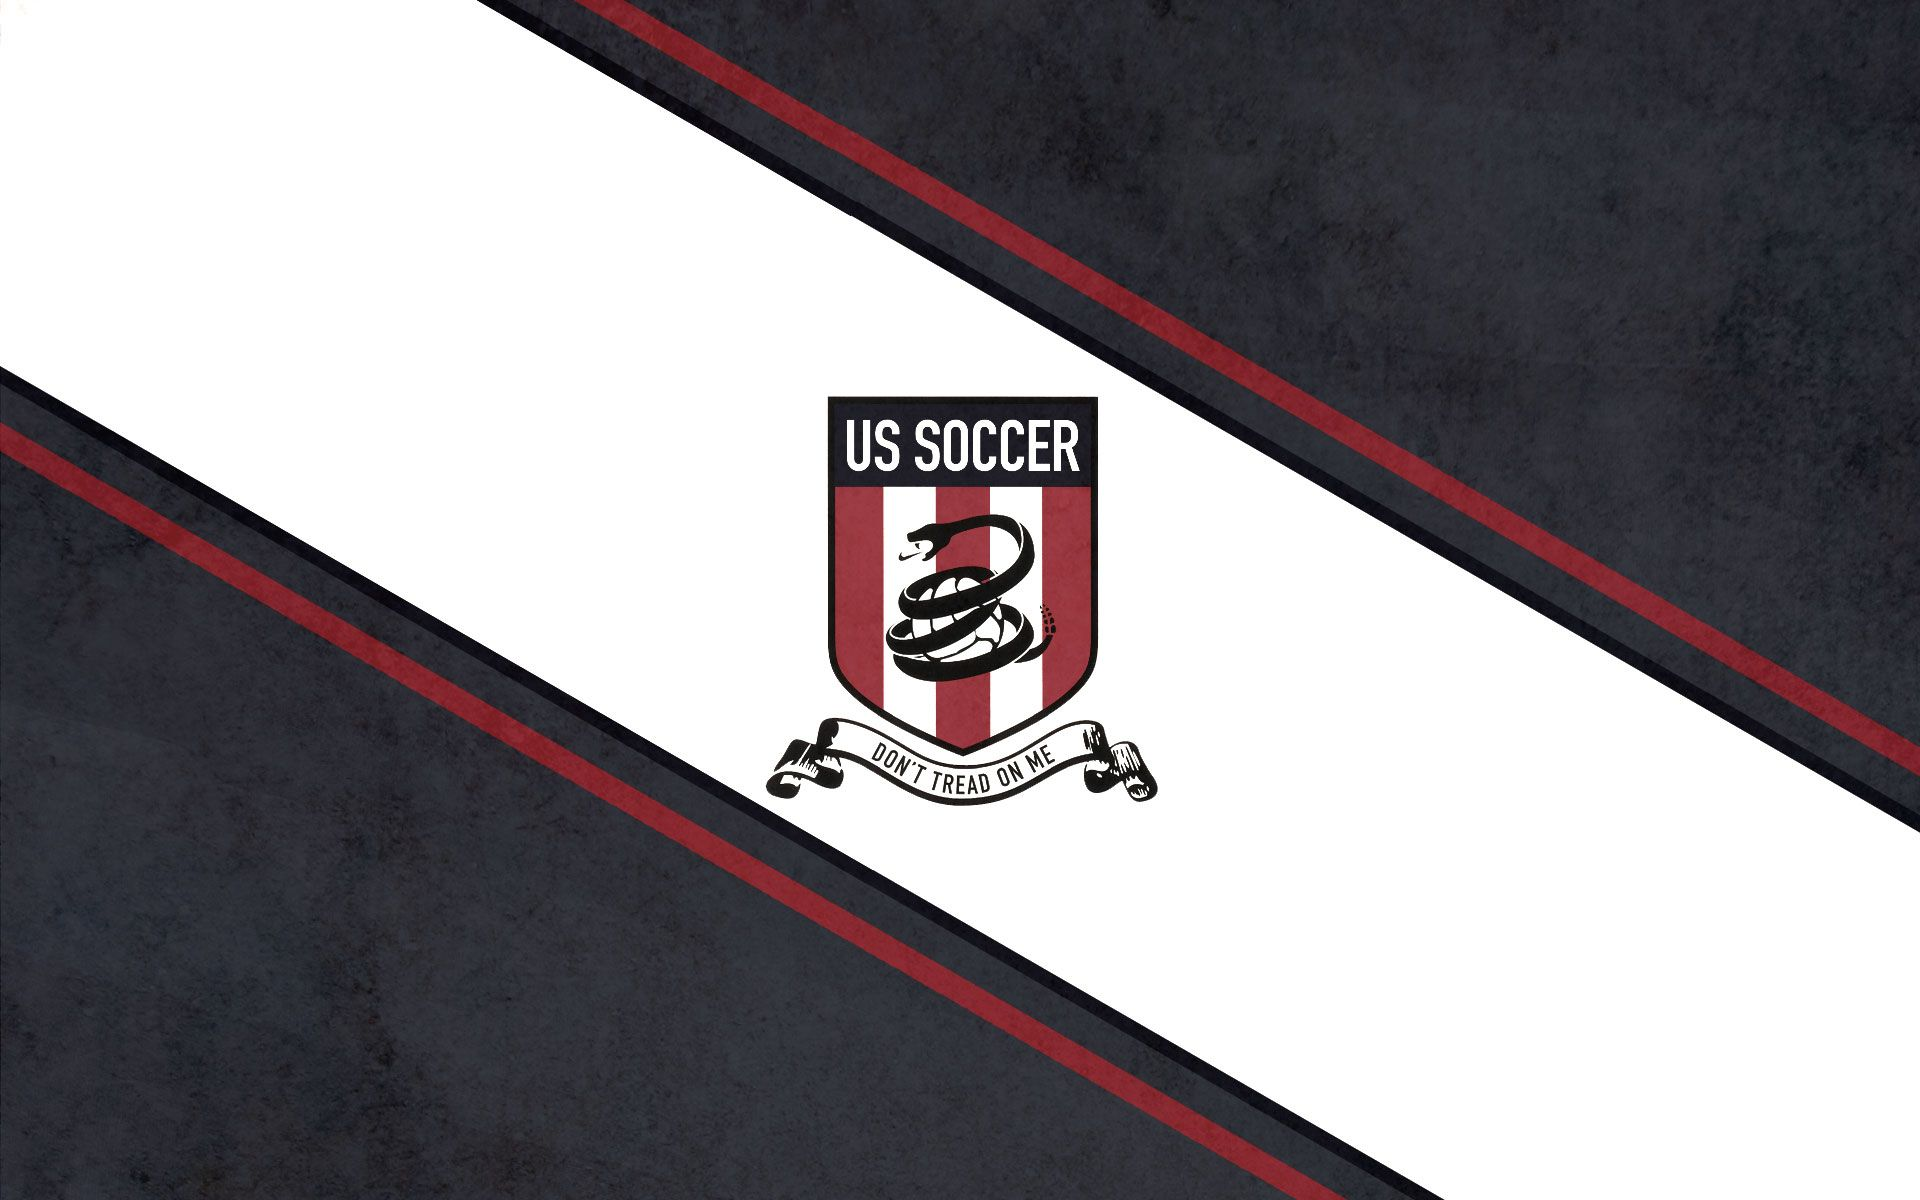 U.S. Soccer Wallpaper